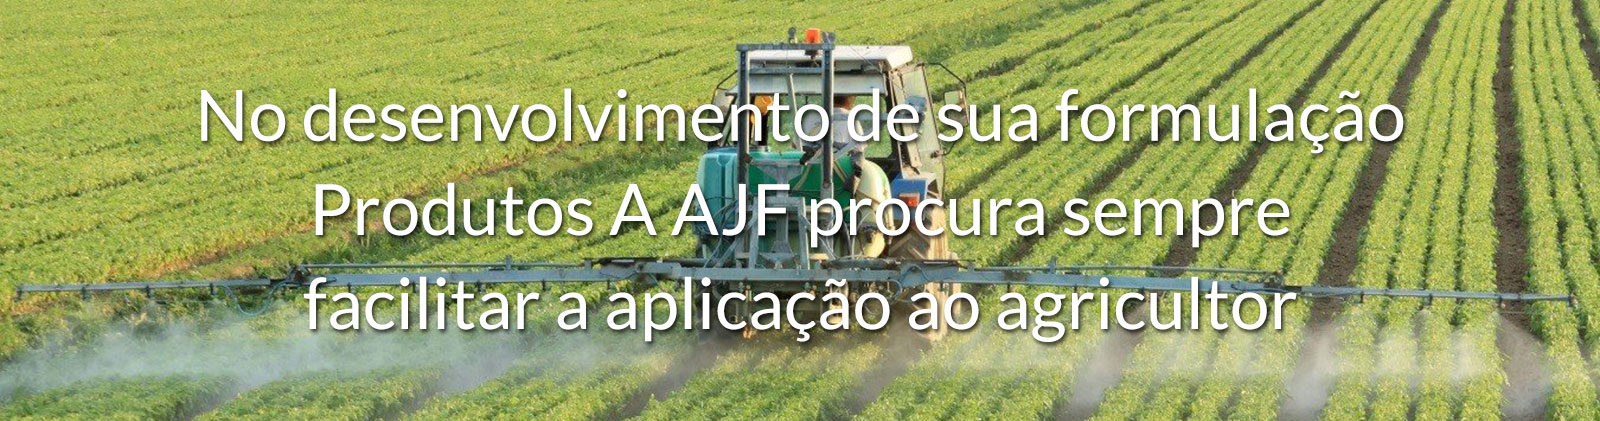 Home - Productos AJF